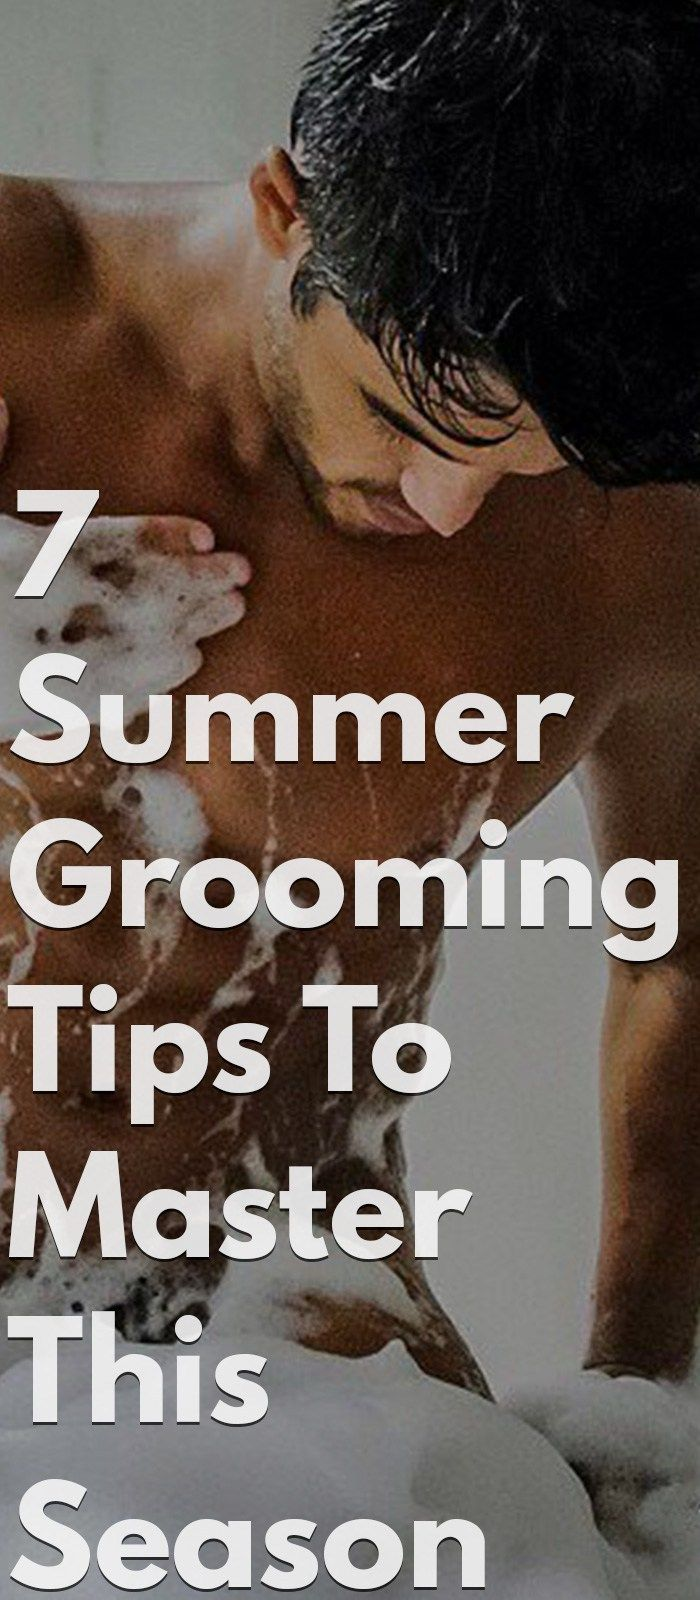 7 Reasons Why You Need Summer Grooming